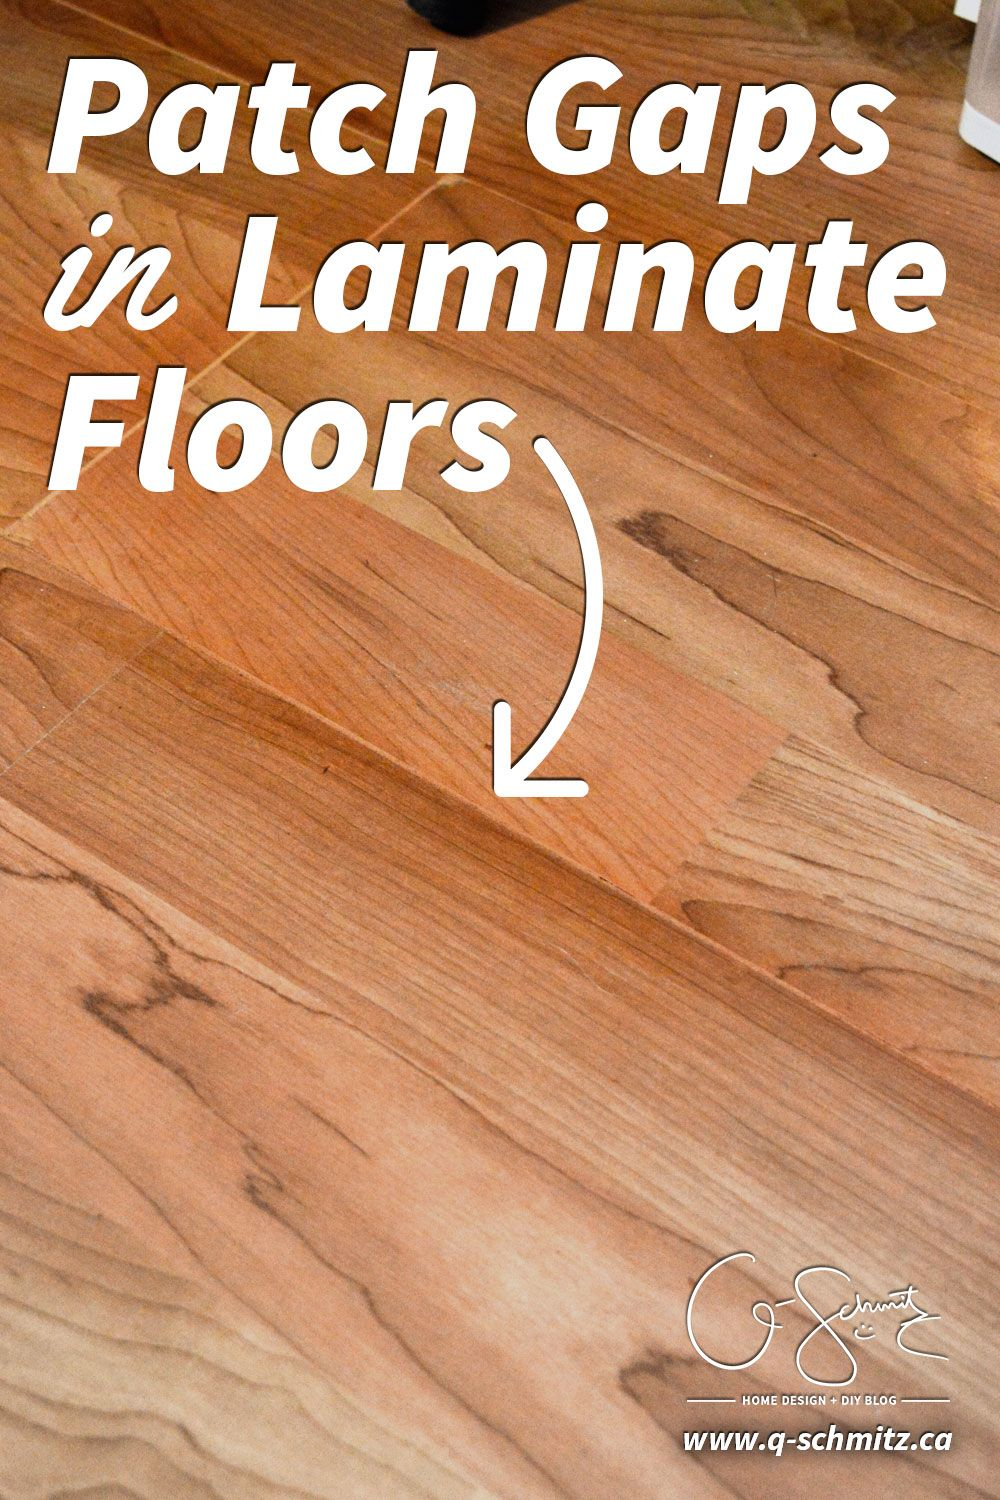 Patch Gaps in Laminate Floors   For the Home    Pinterest   Patches     How to patch gaps in laminate floors when you have removed a wall or want to